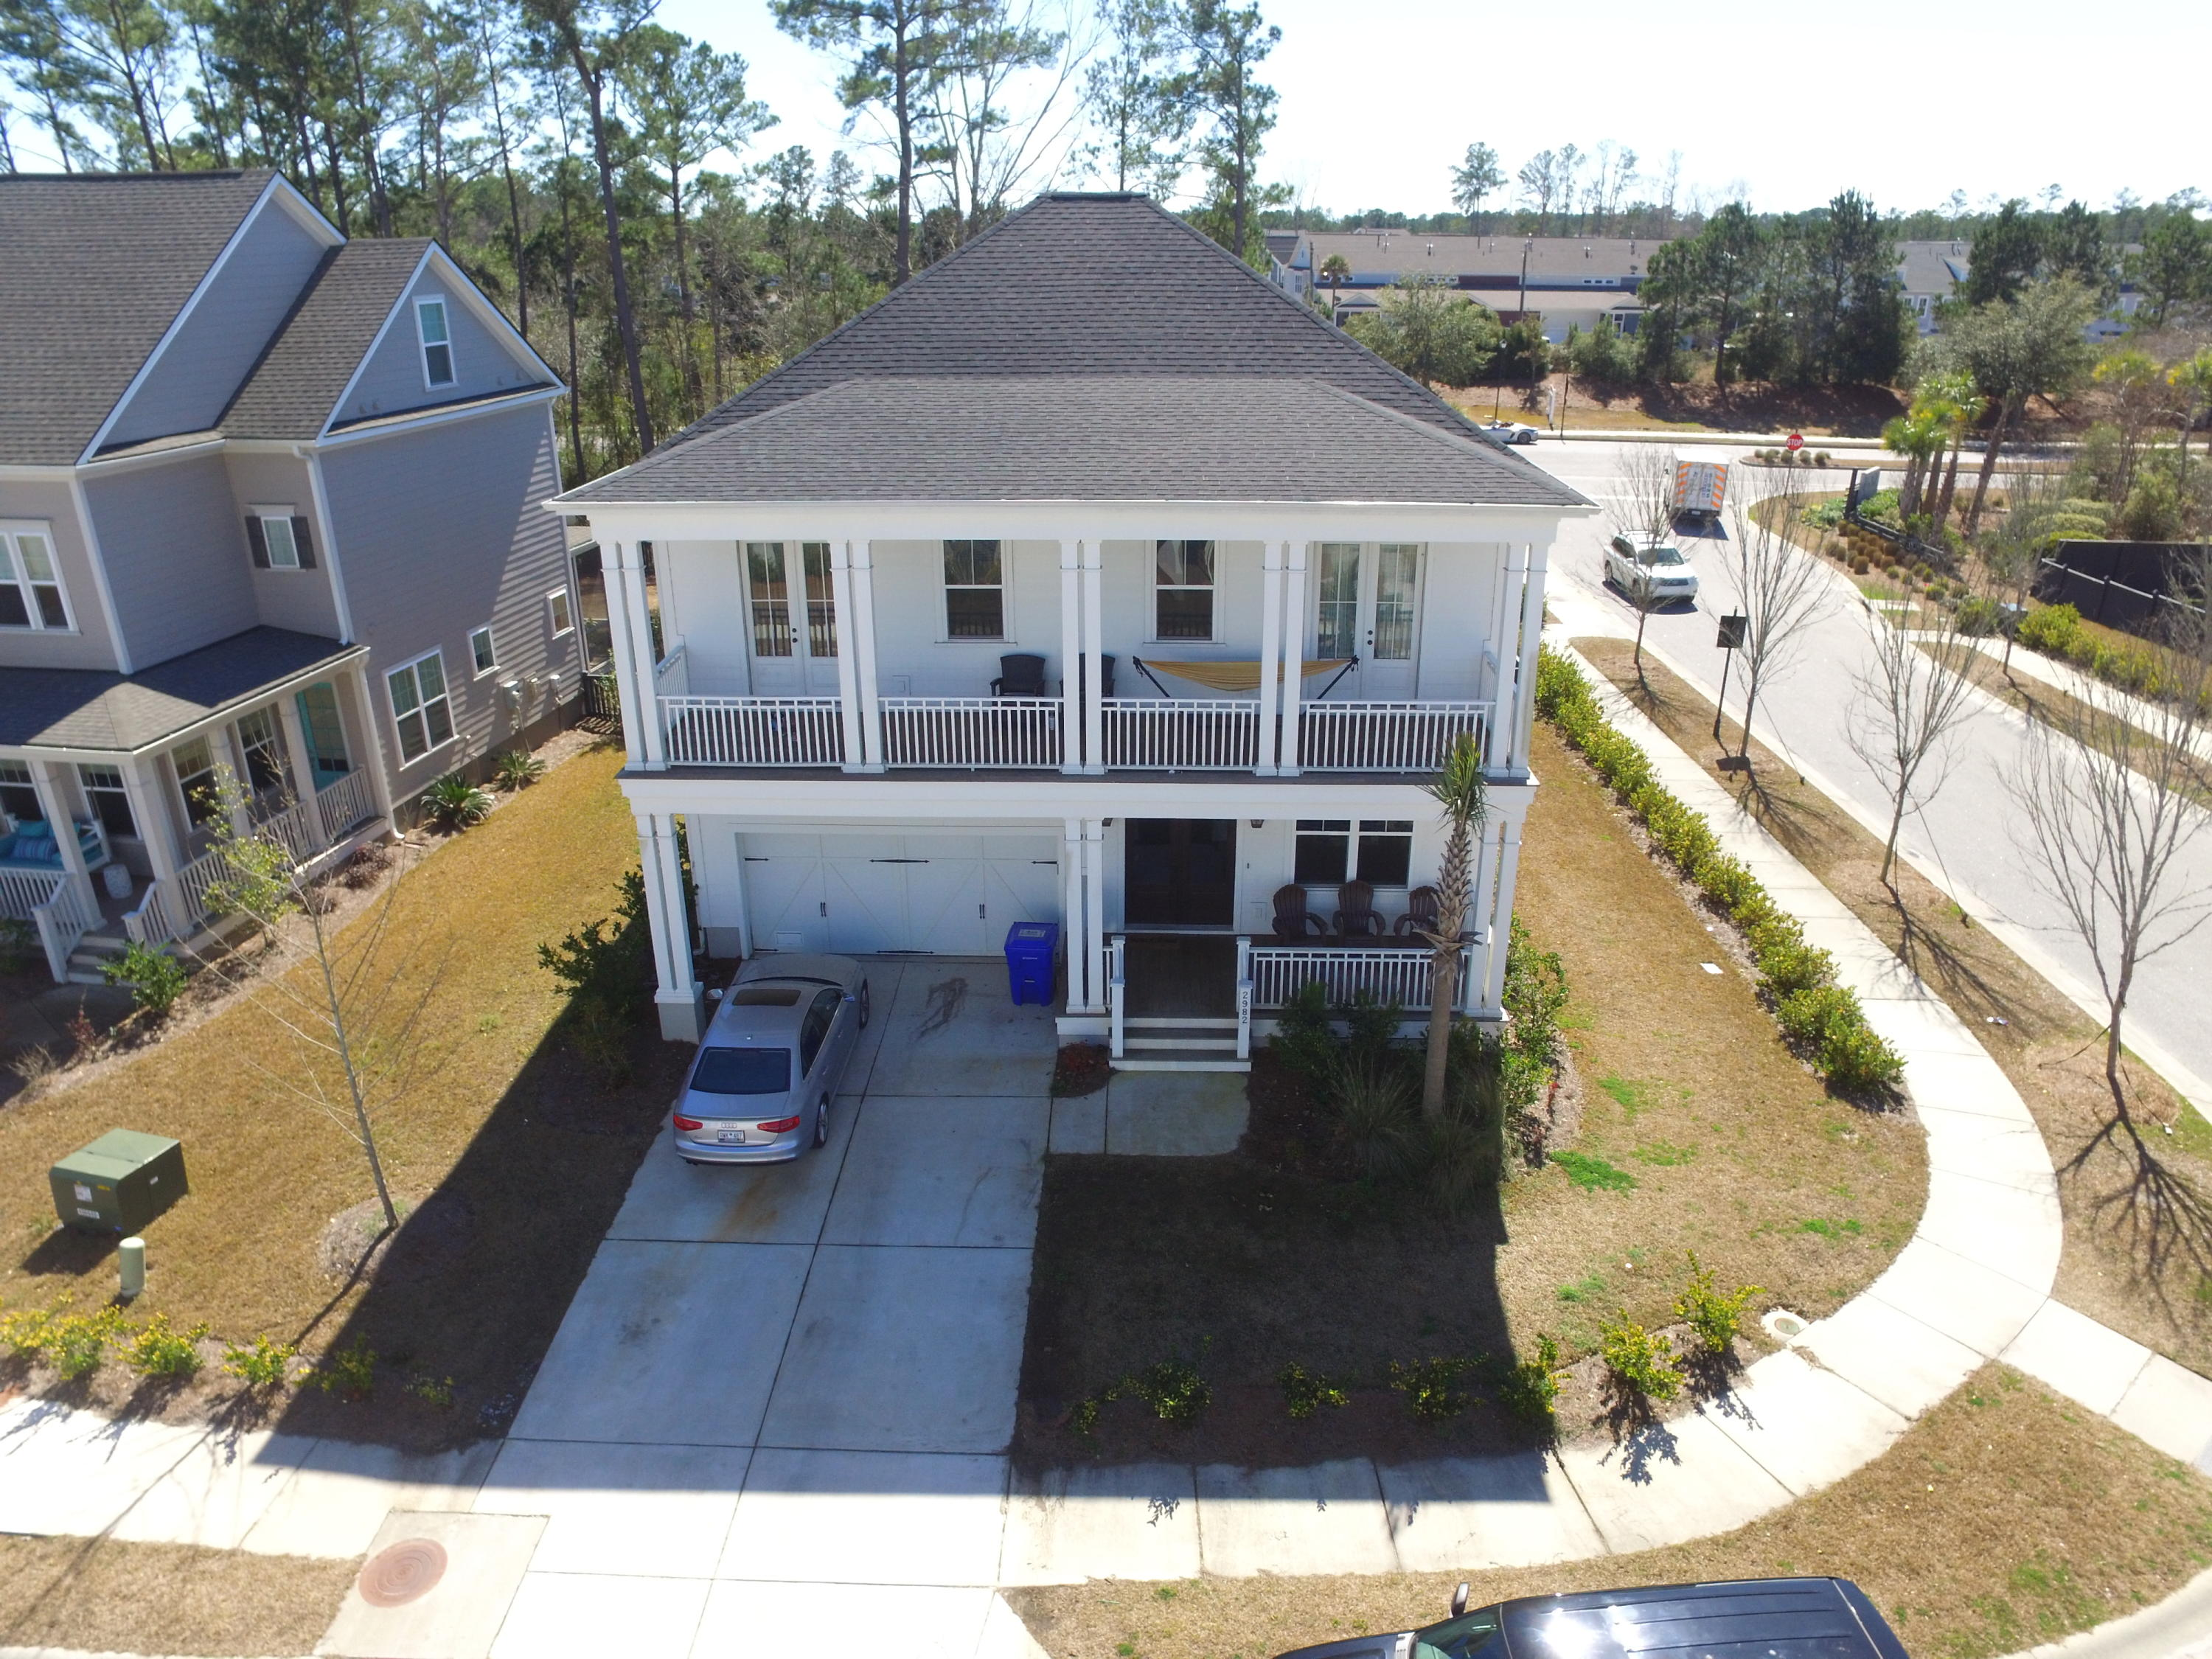 Dunes West Homes For Sale - 2982 Clearwater, Mount Pleasant, SC - 5